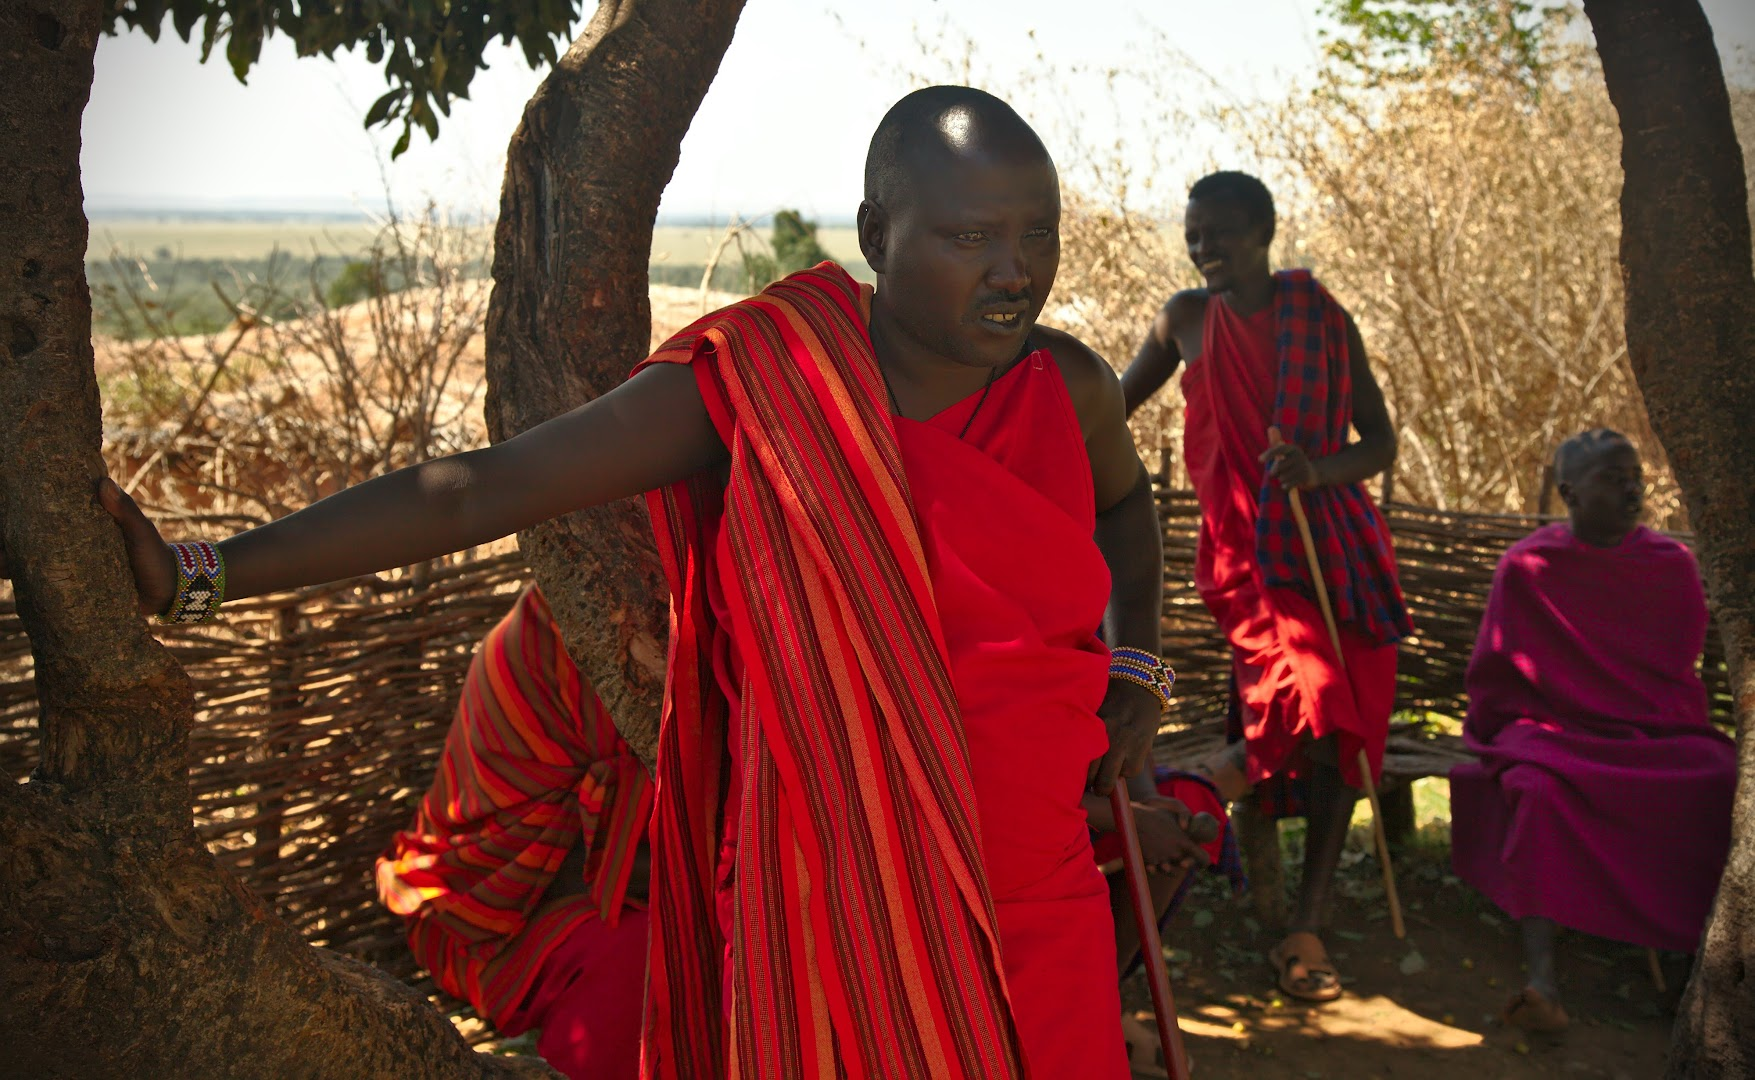 Masai men resting during the mid-day heat